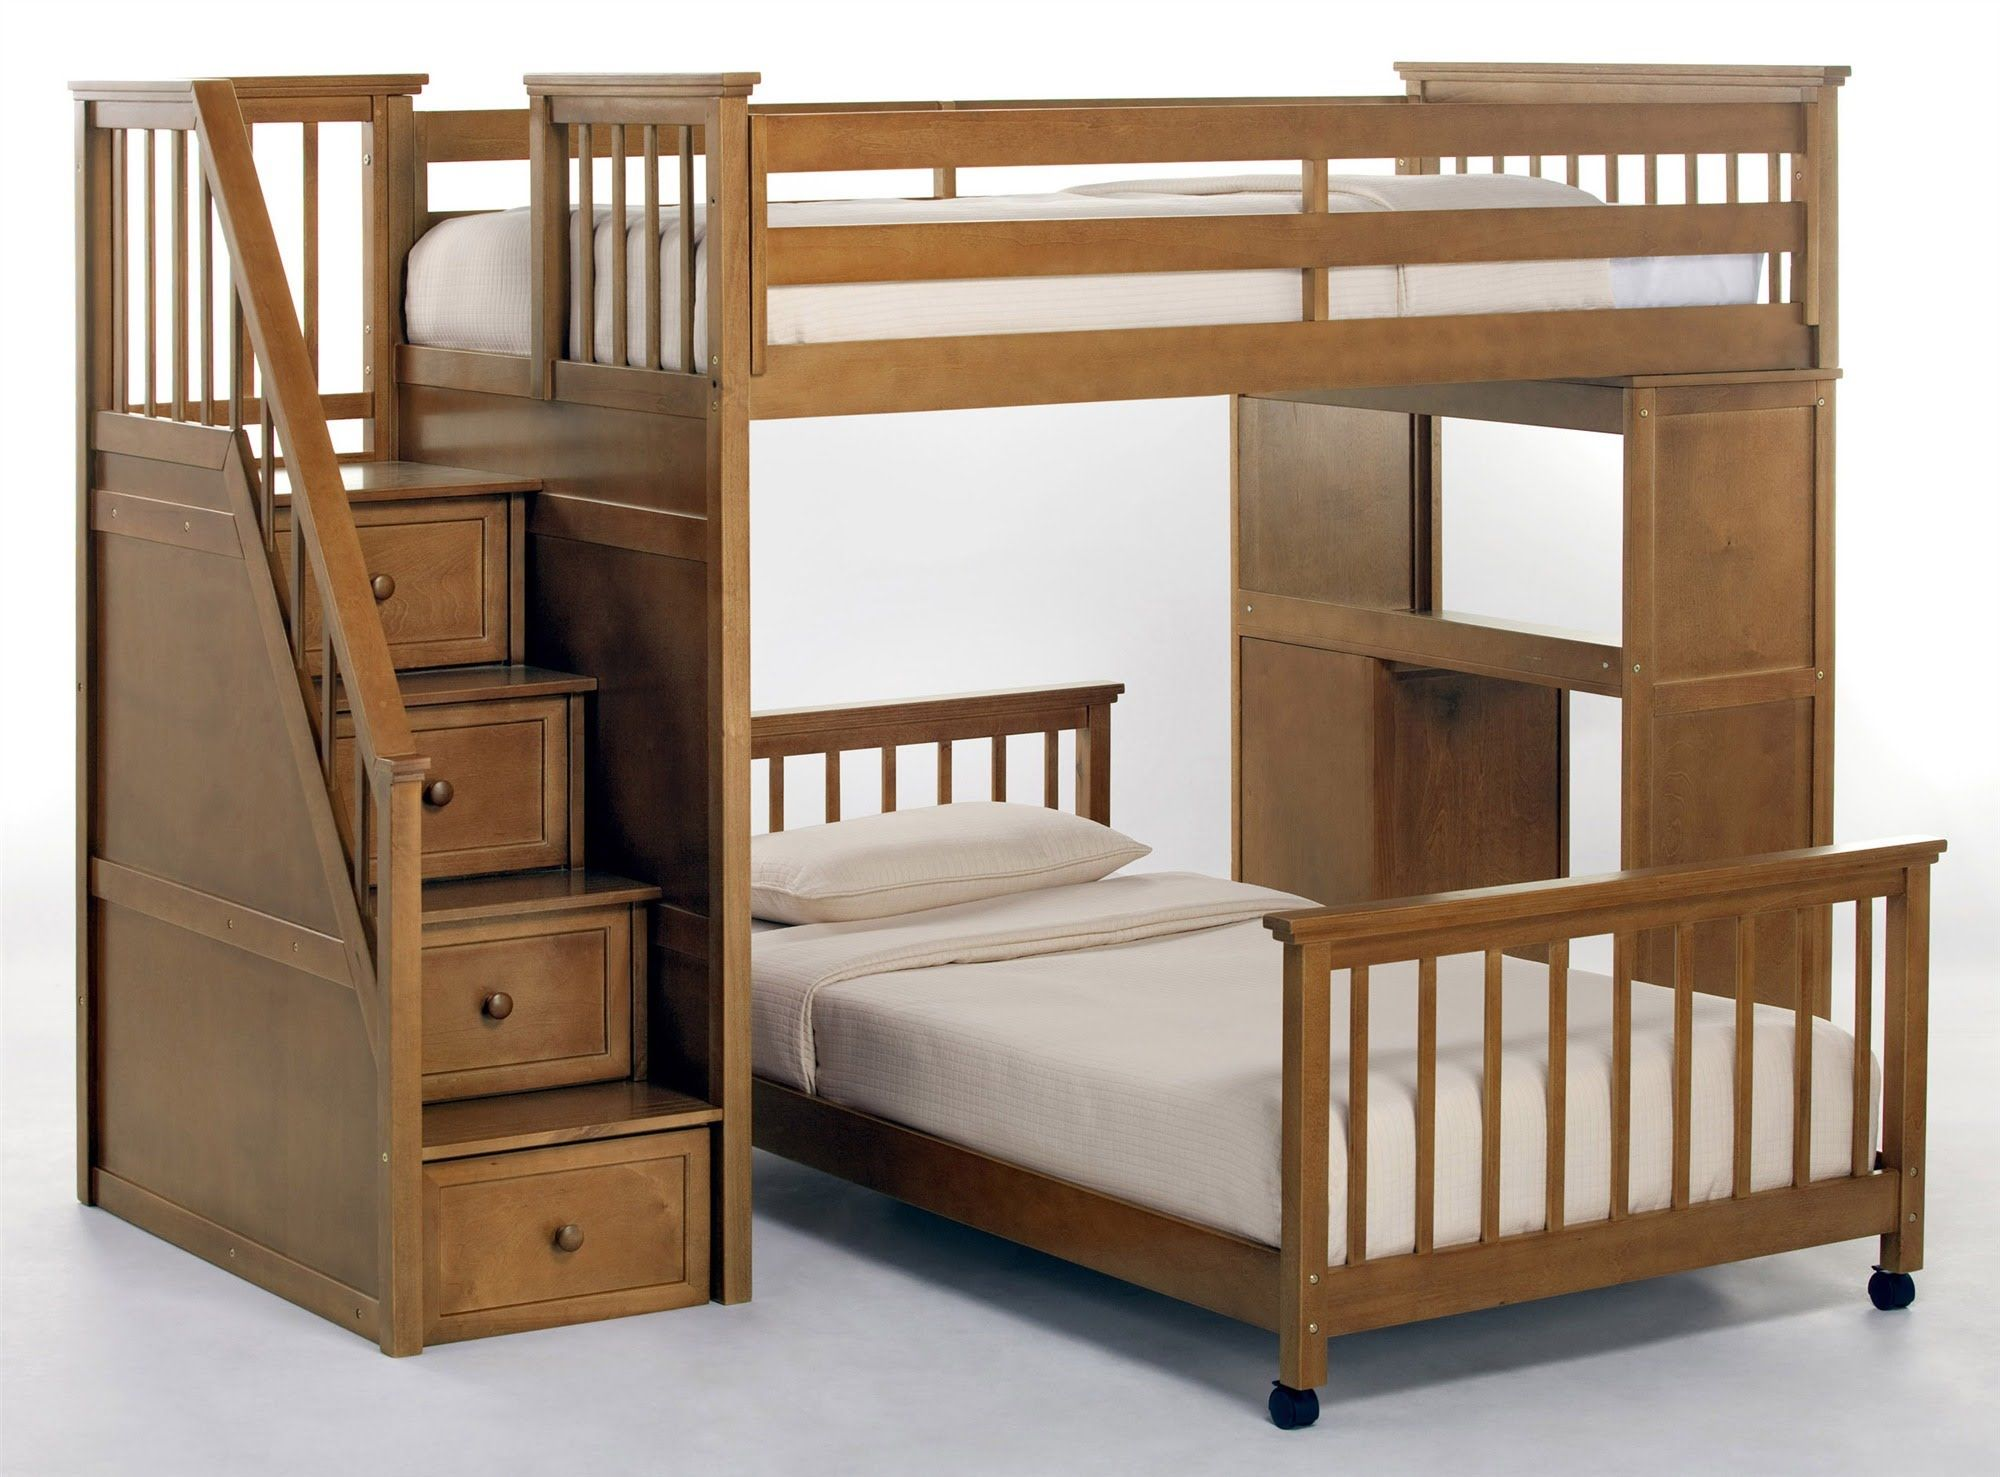 Bunk Beds for Adults Bunk Beds with Futon